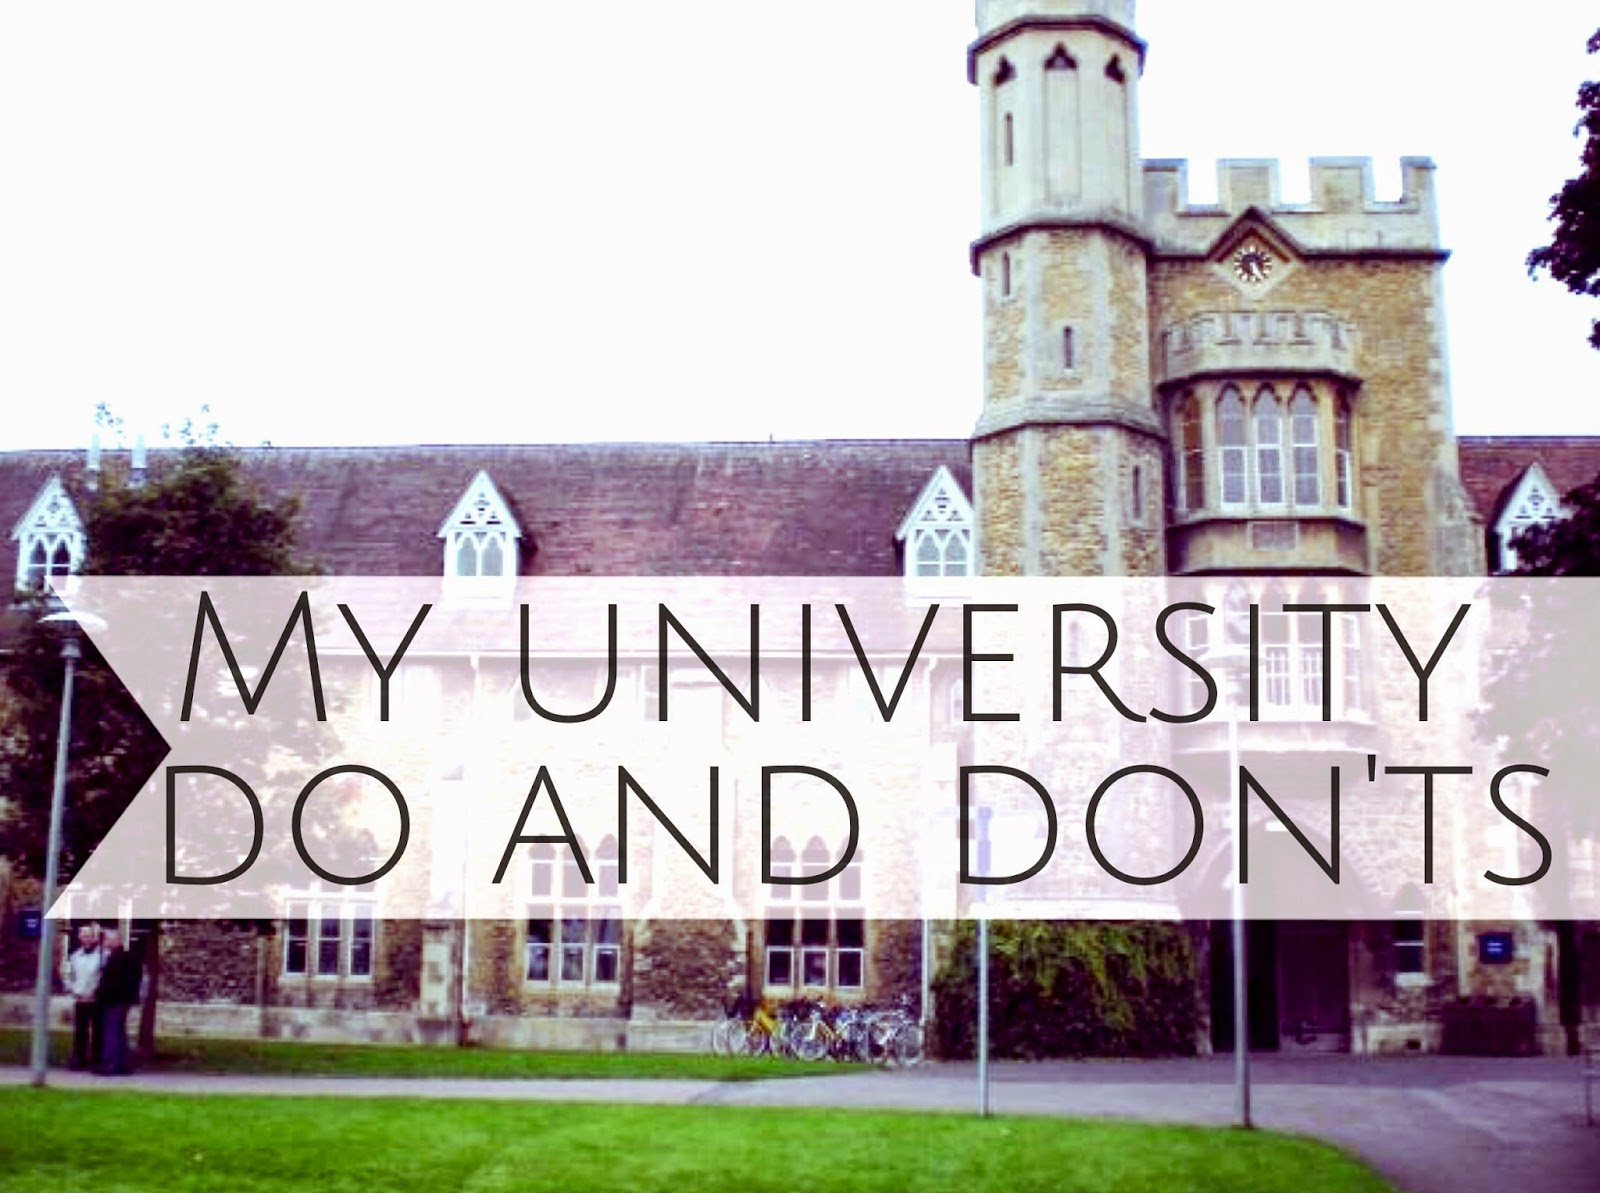 What to do and what not to do at uni